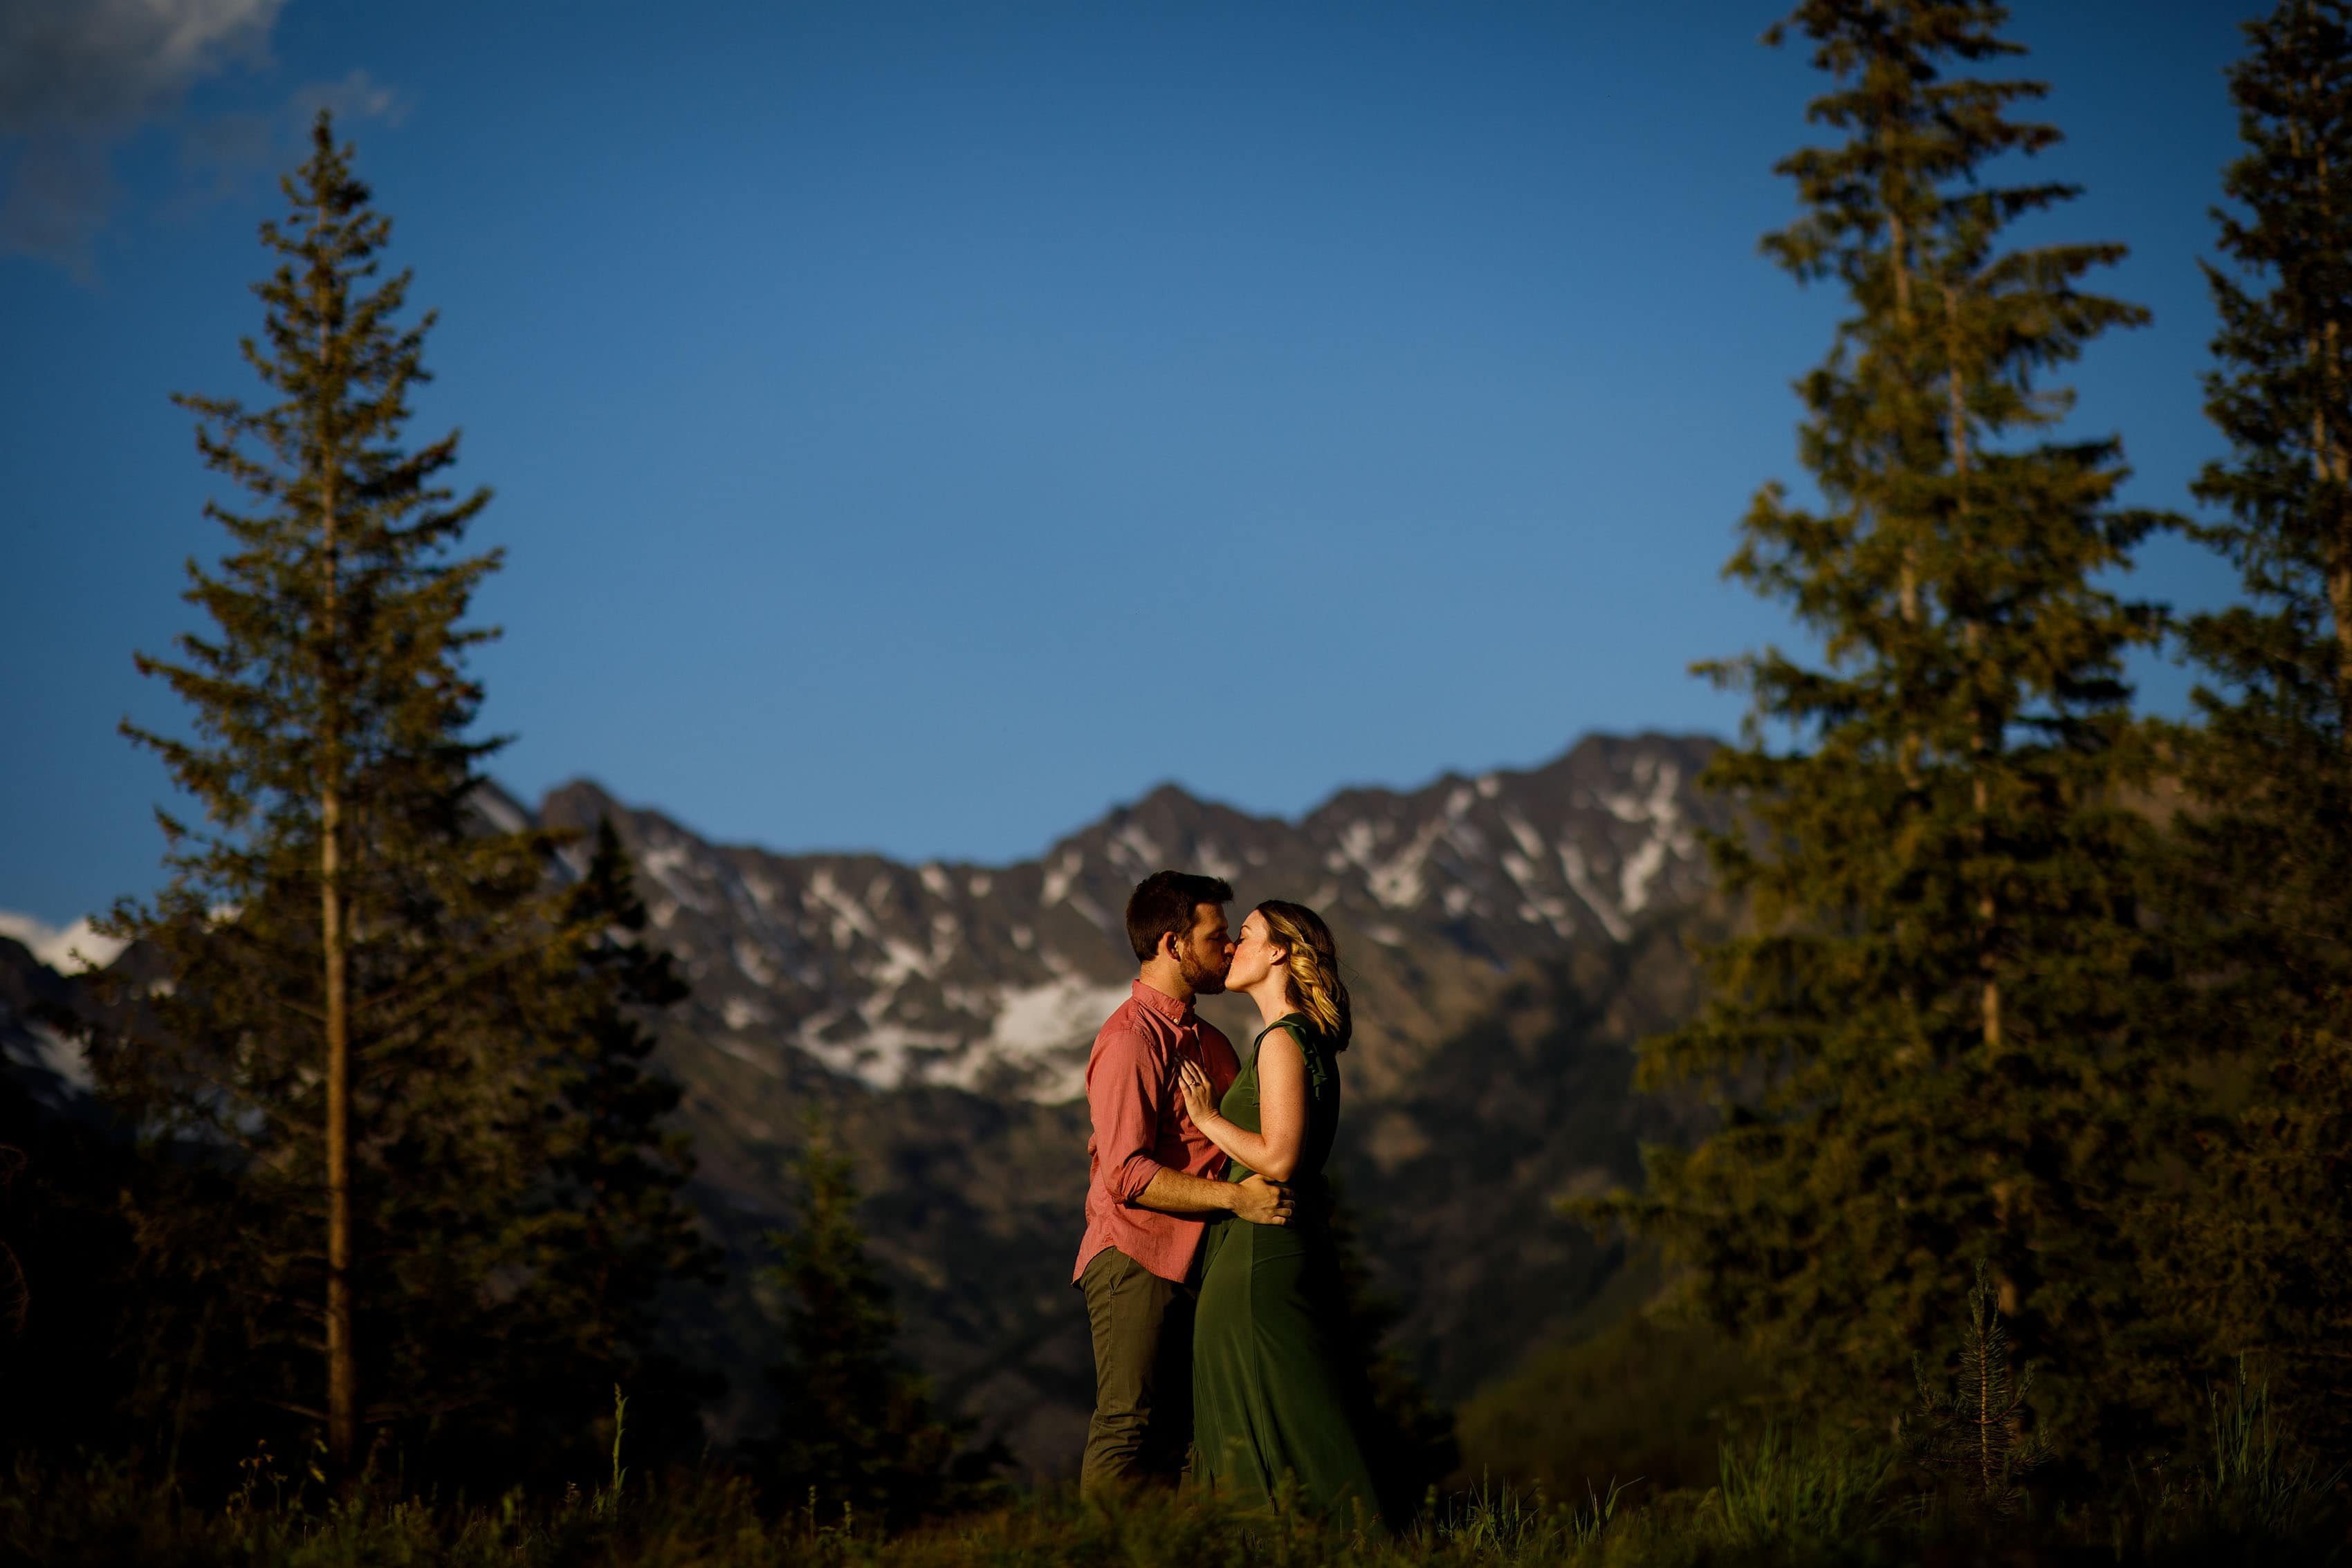 A couple kisses during sunset at Piney River Ranch during their engagement session